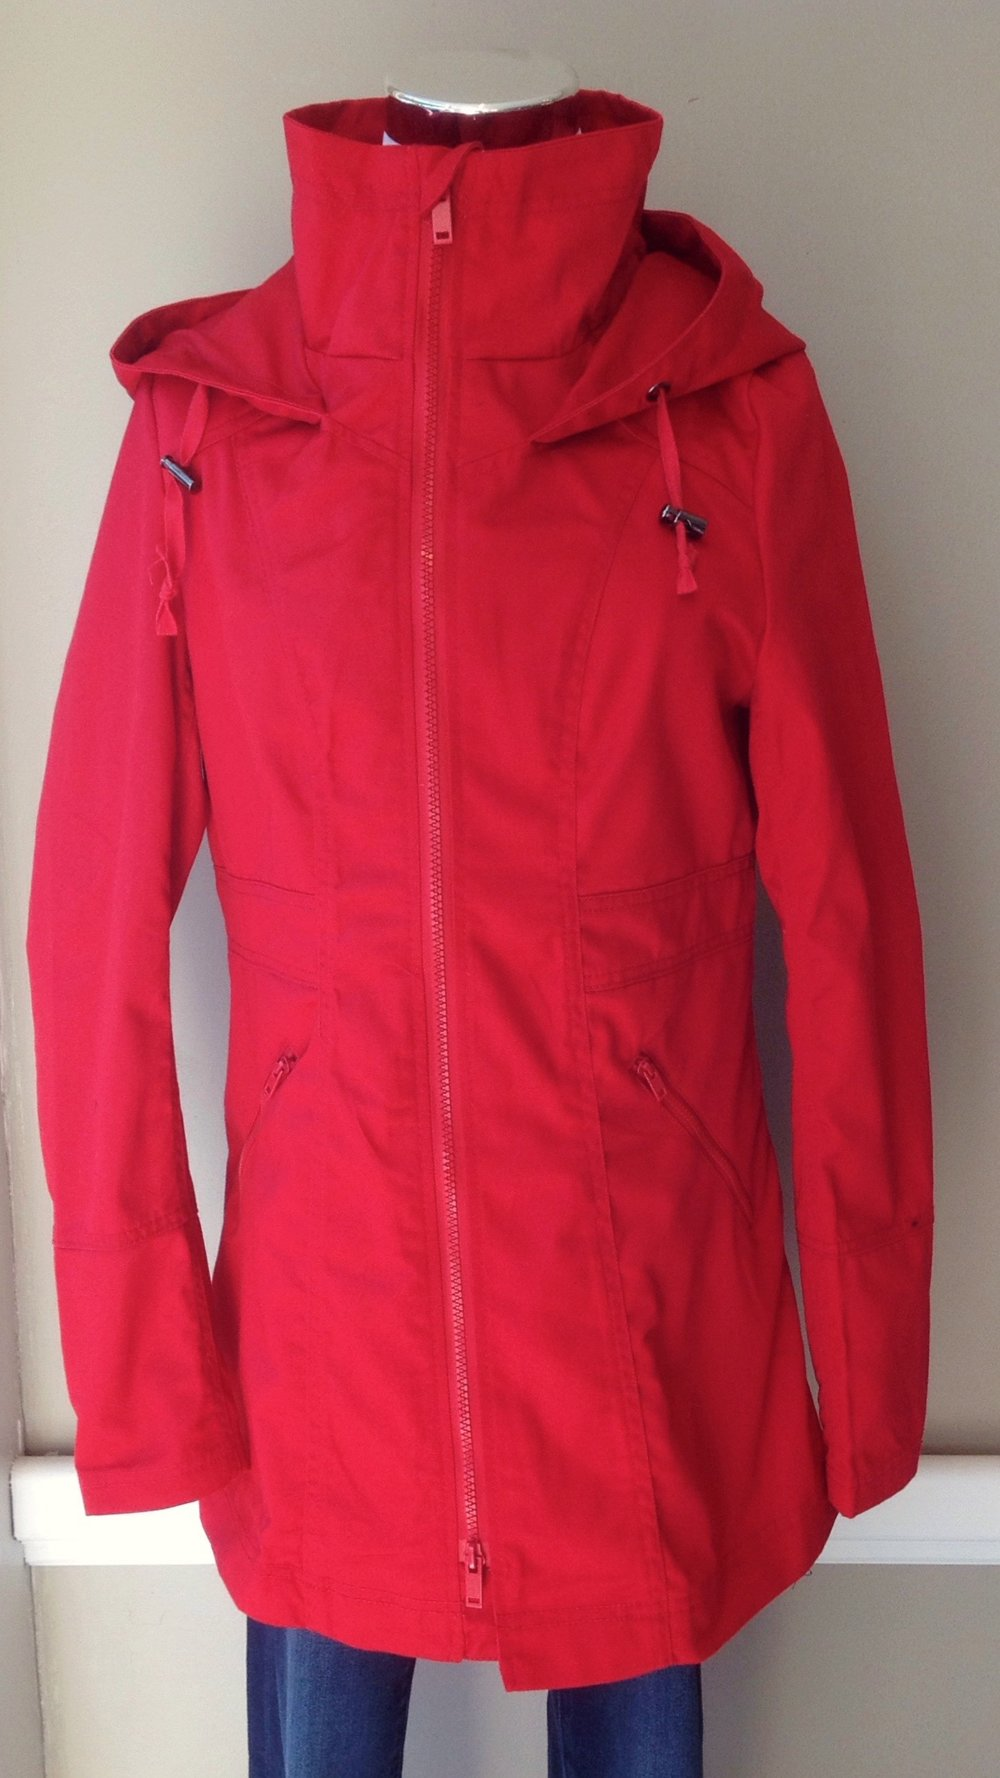 Water resistant utility jacket with high collar, hood and cinched back waist, $48